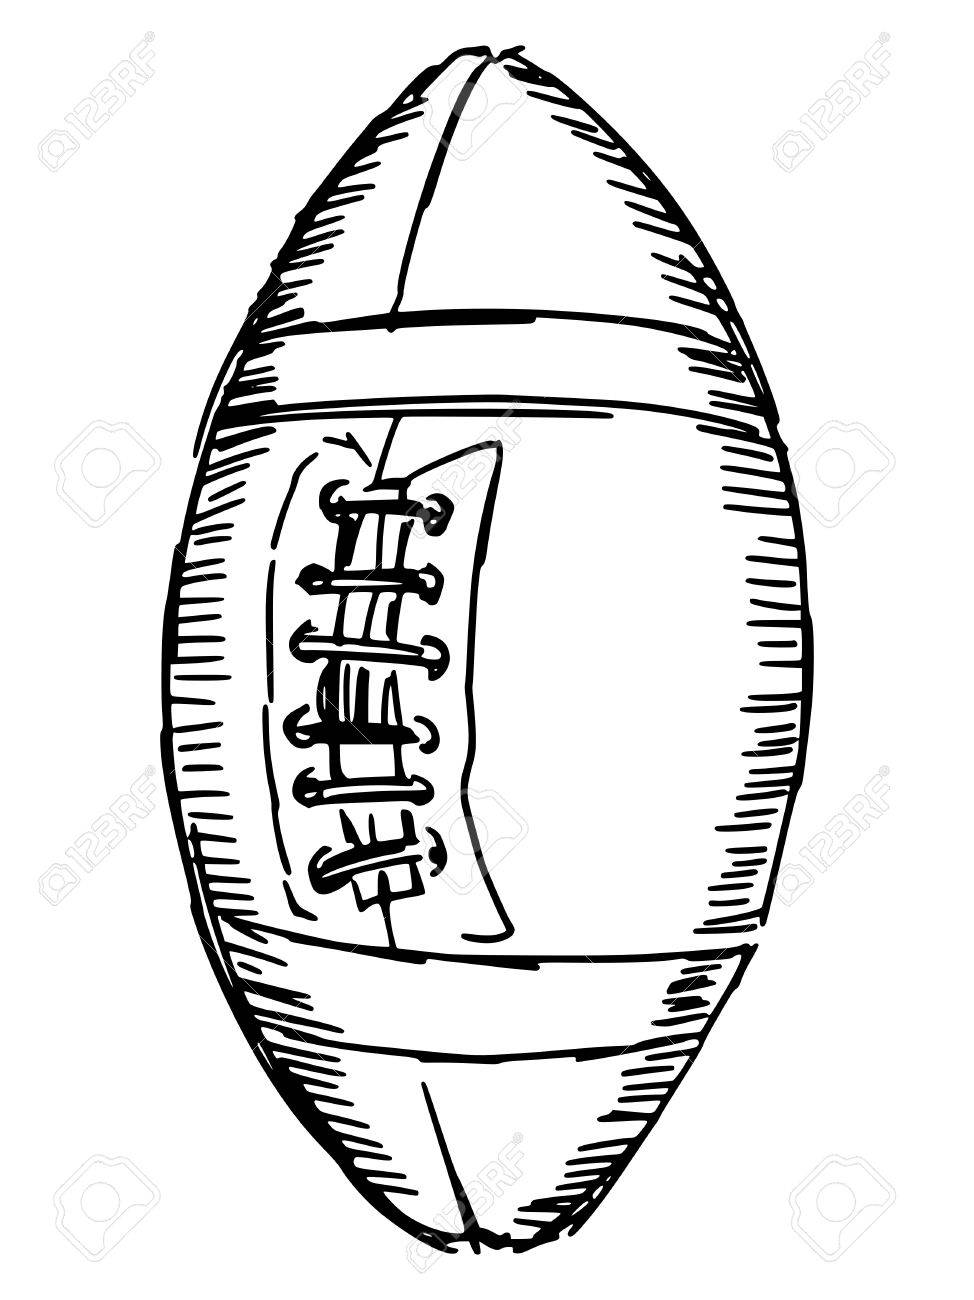 Sketch doodle hand drawn illustration of american football ball stock vector 30532221